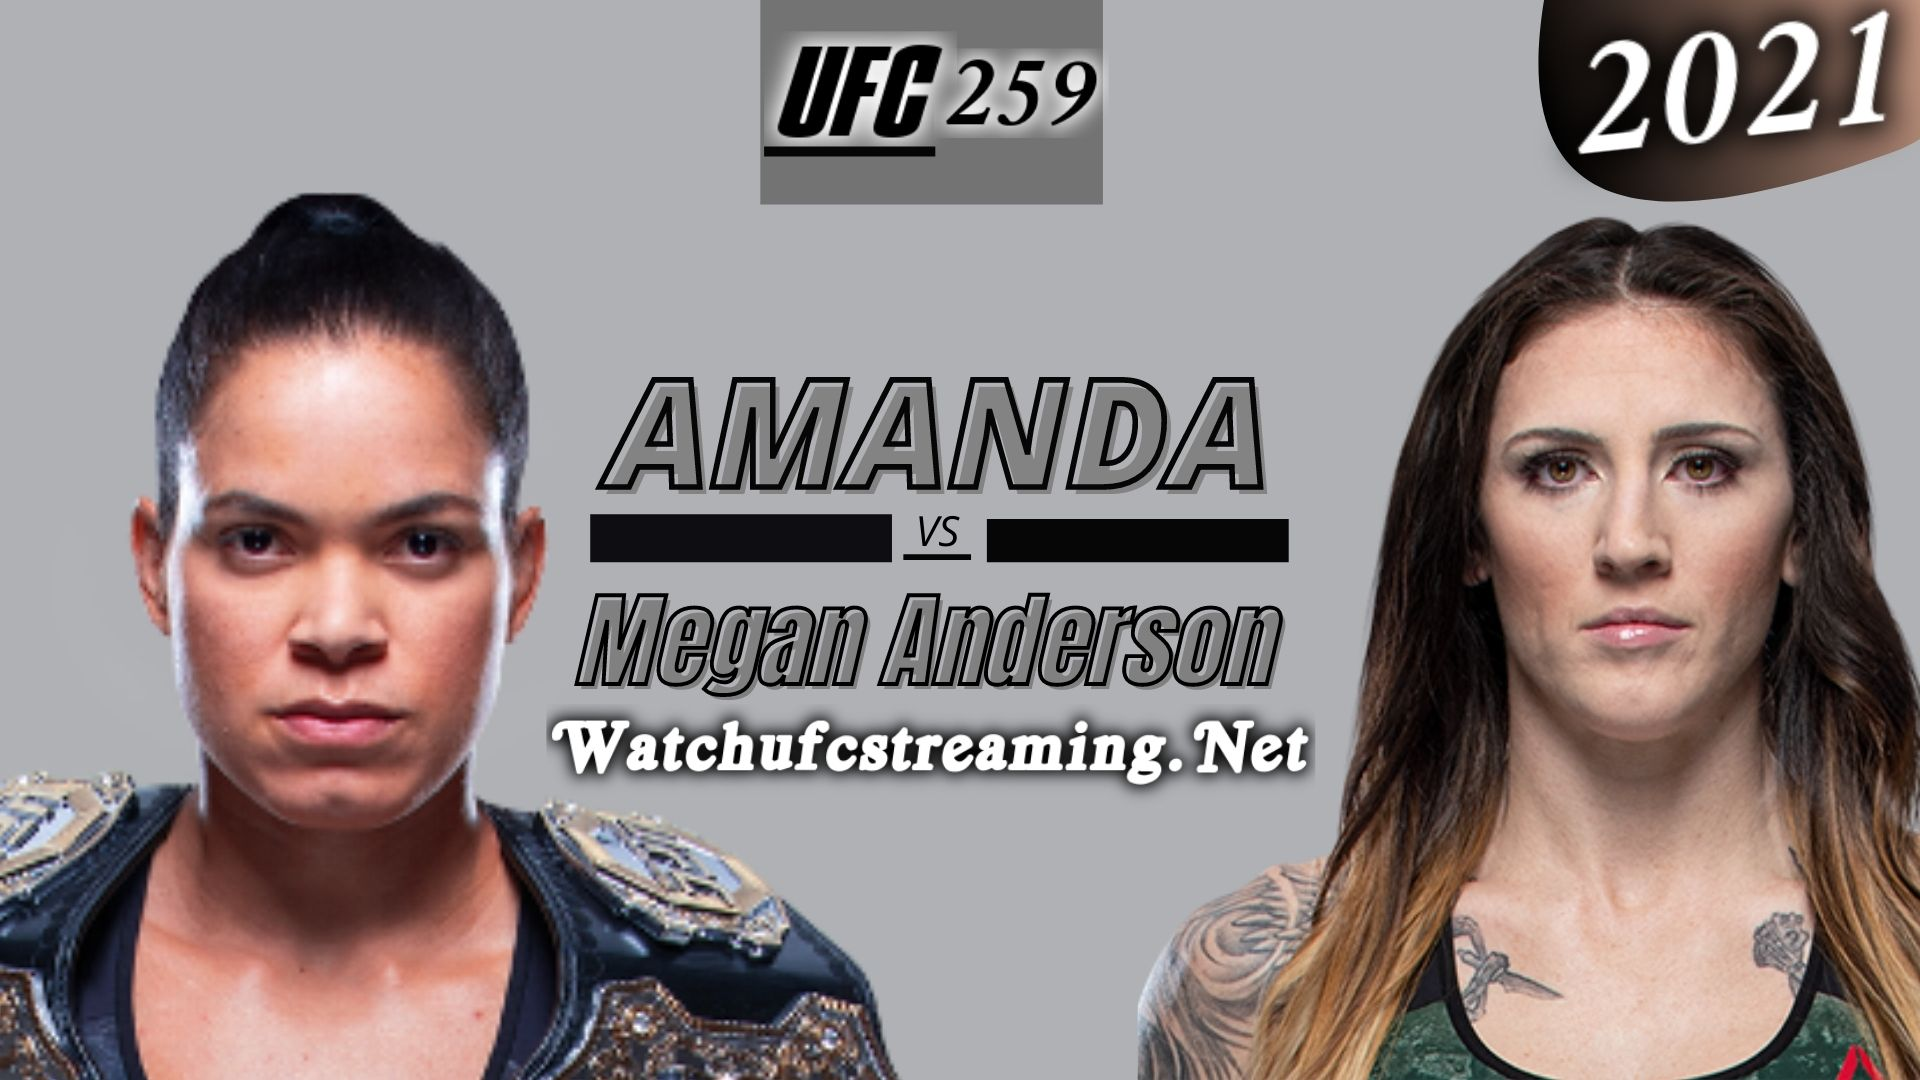 UFC 259: Amanda Nunes Vs Megan Anderson Highlights 2021 | Featherweight